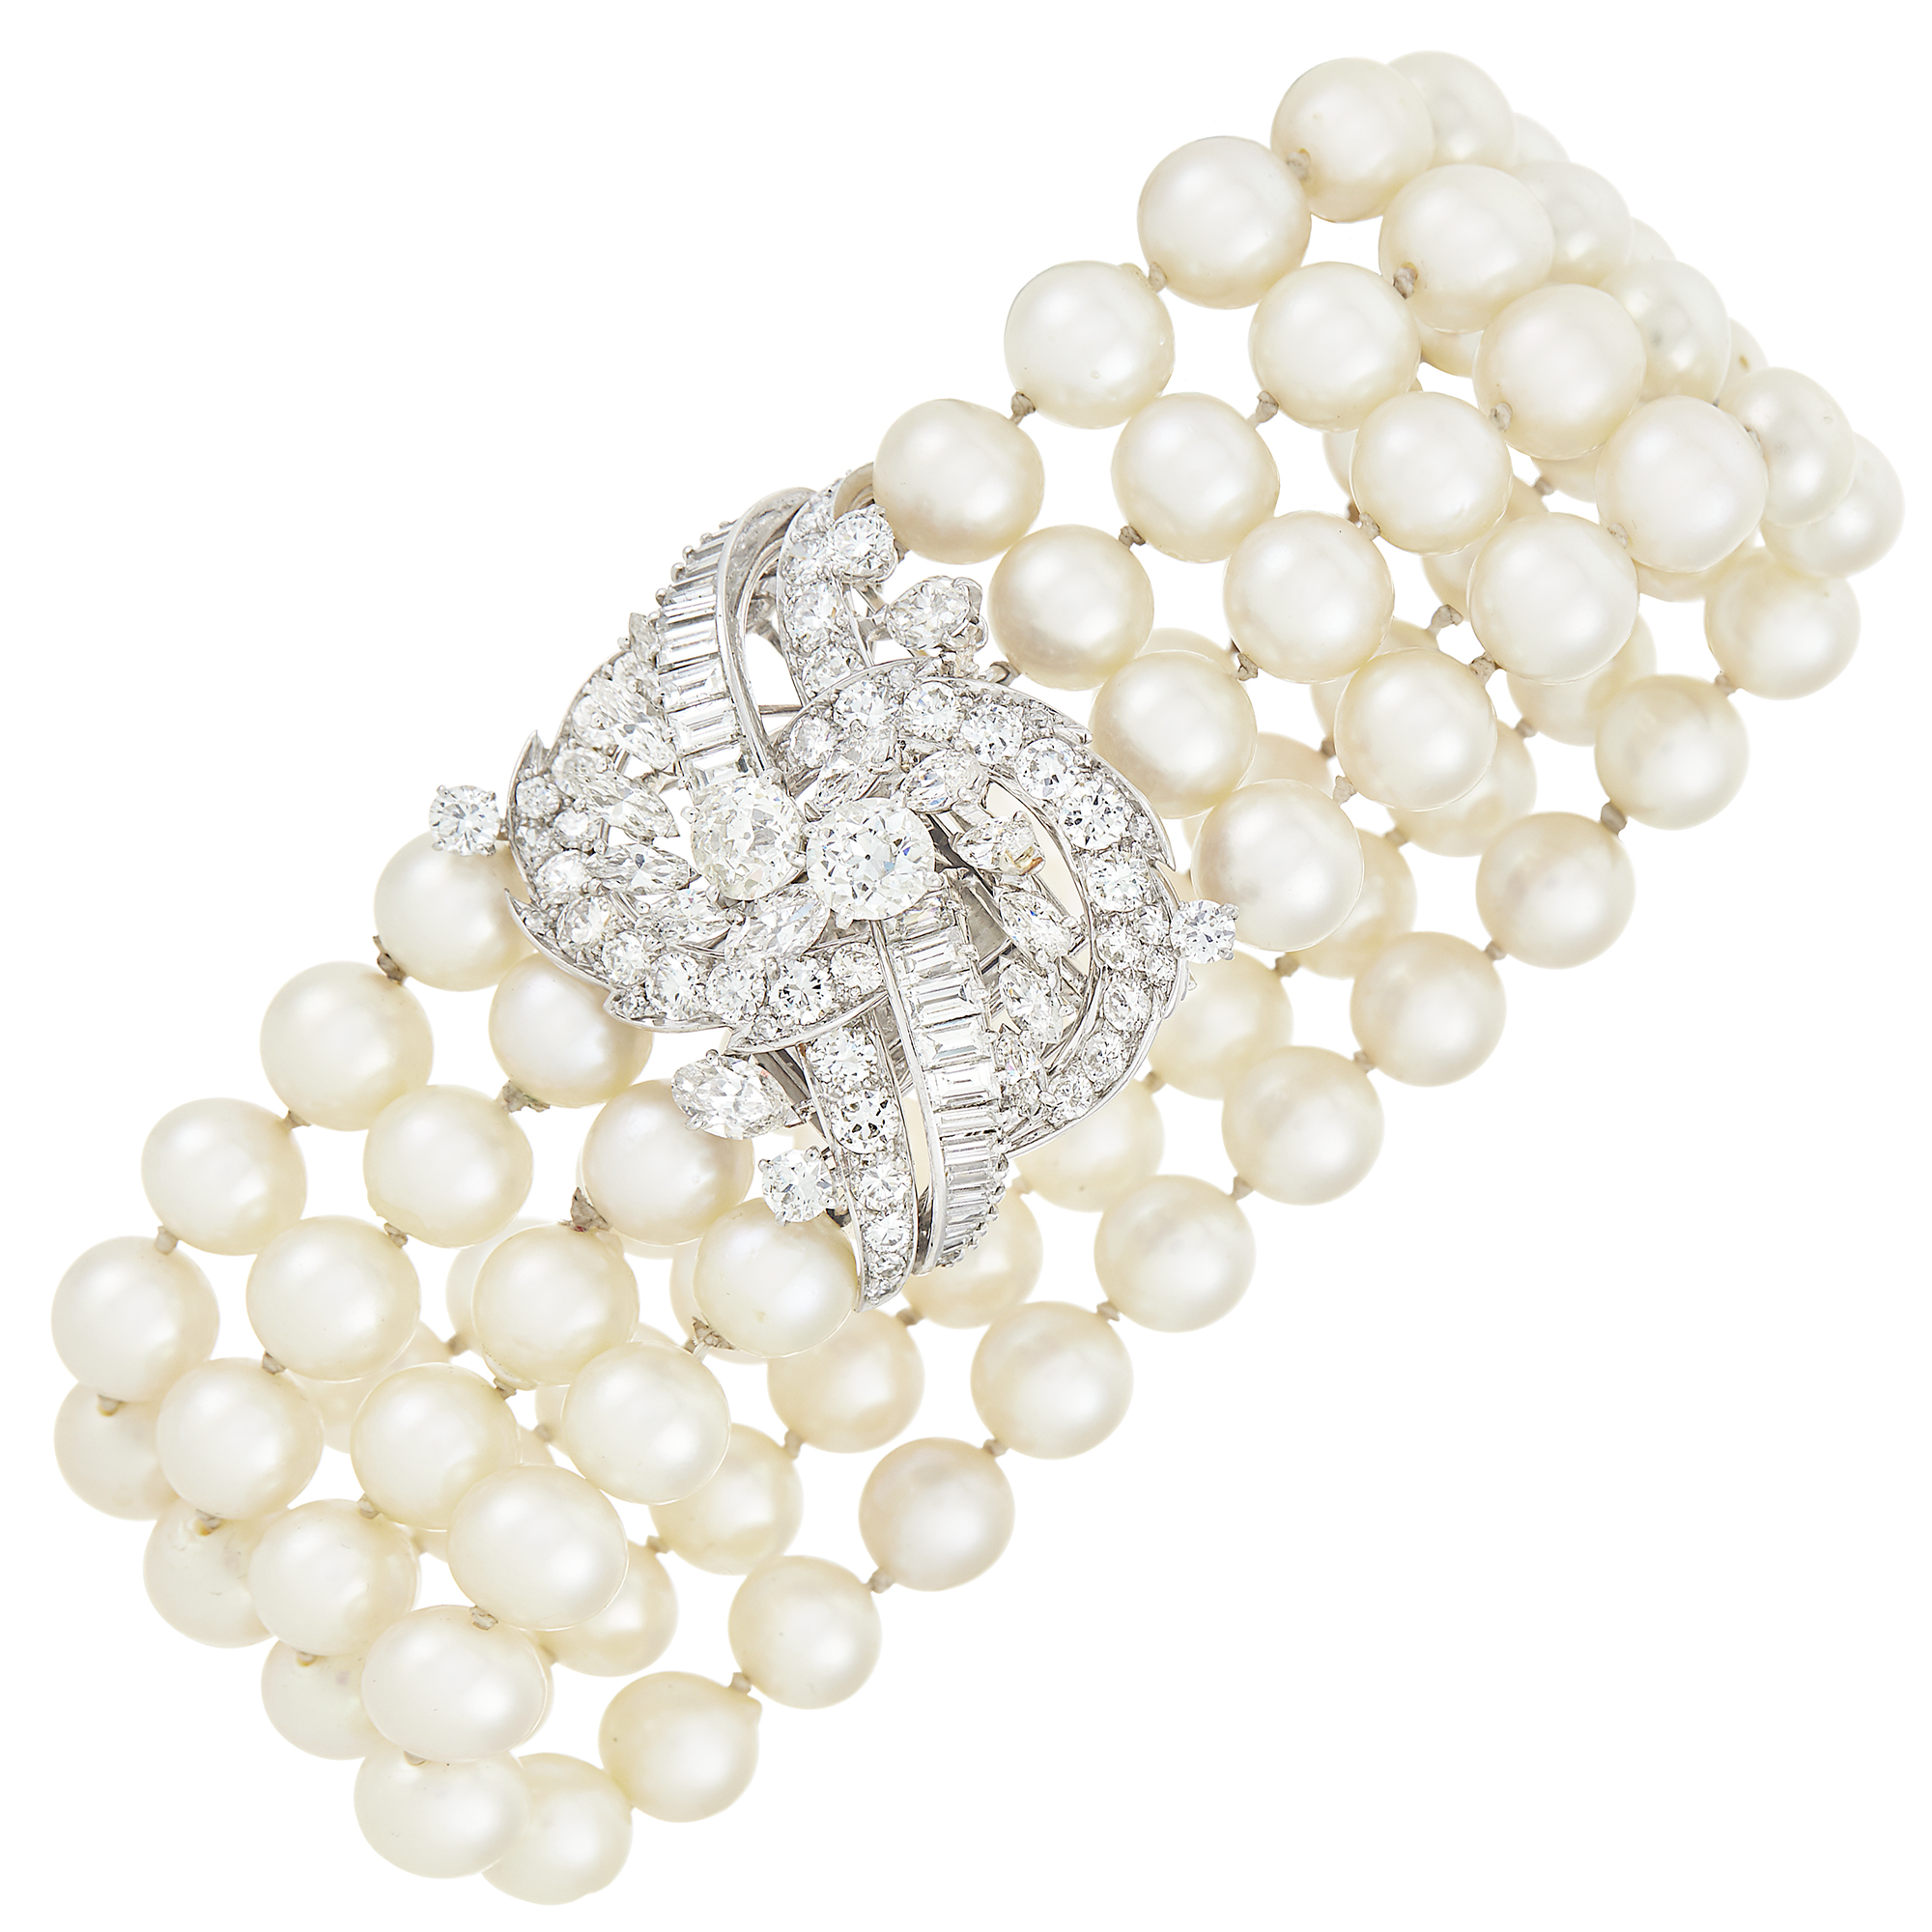 Lot image - Four Strand Cultured Pearl Bracelet with Platinum and Diamond Clasp, Monture Mauboussin, France